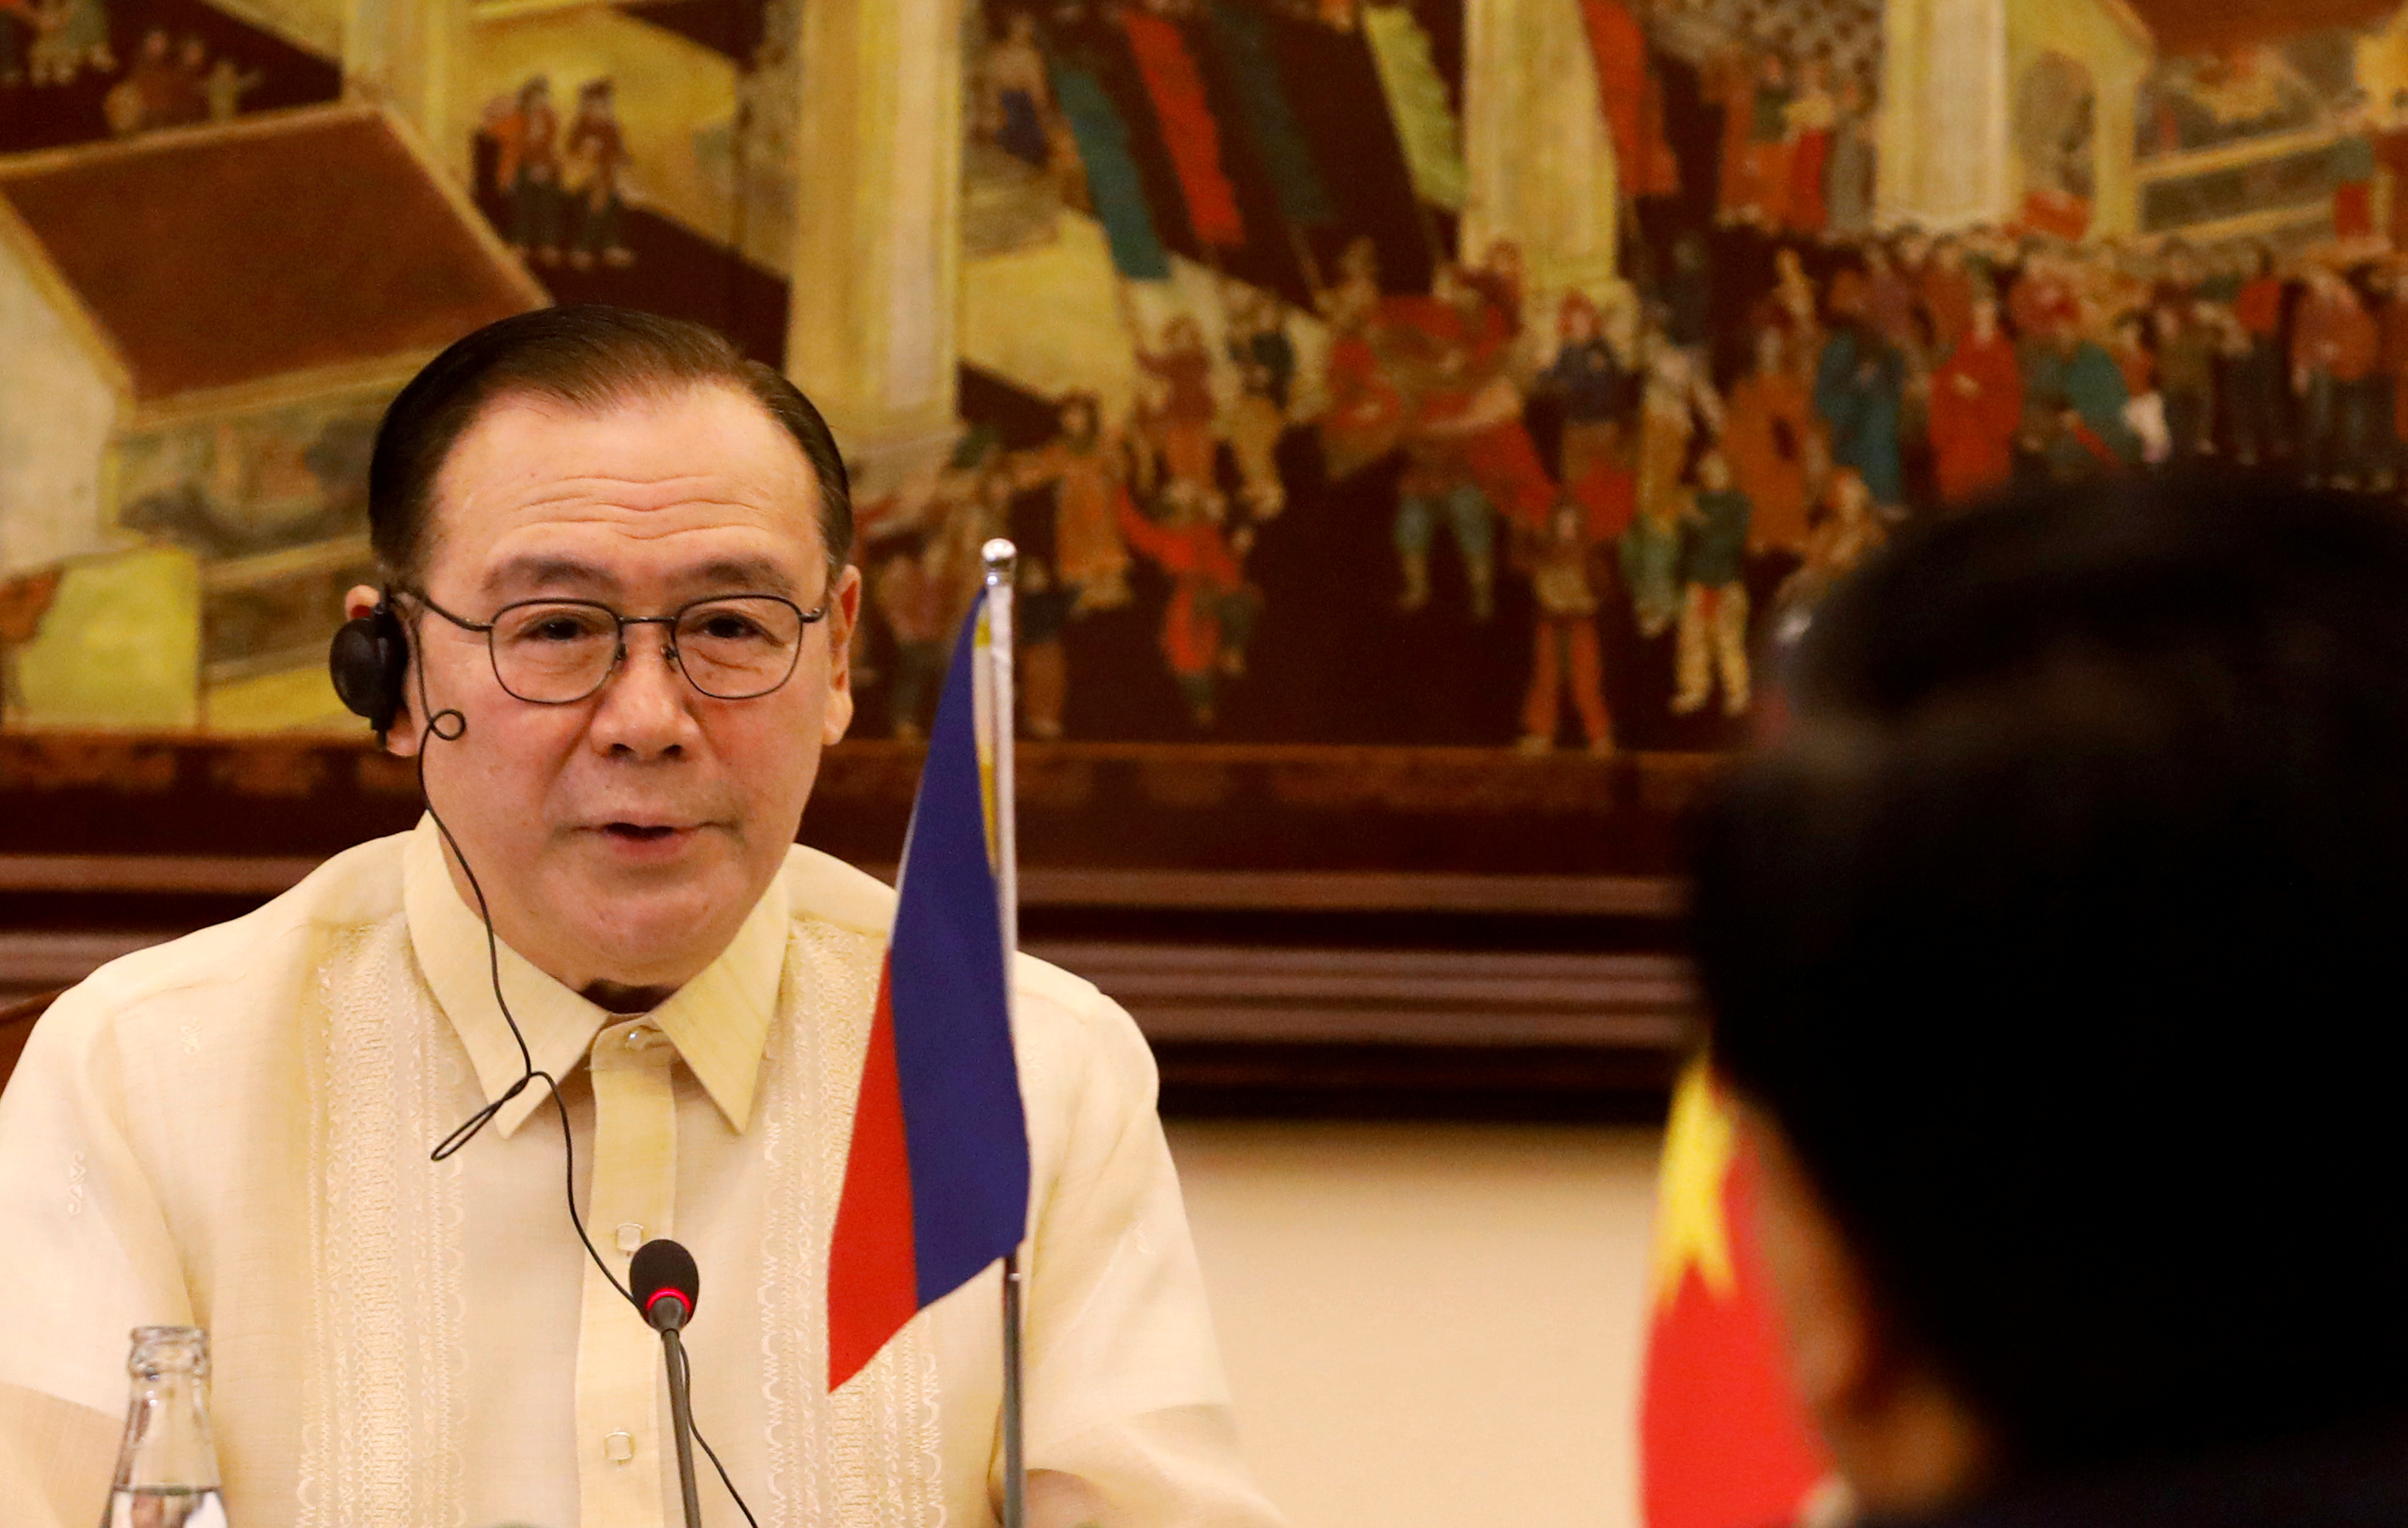 Philippines' Foreign Affairs Secretary Teodoro Locsin is seen during a talk with Vietnam's Deputy Prime Minister and Foreign Minister Pham Binh Minh at the Government Guesthouse in Hanoi, Vietnam July 8, 2019. REUTERS/Kham